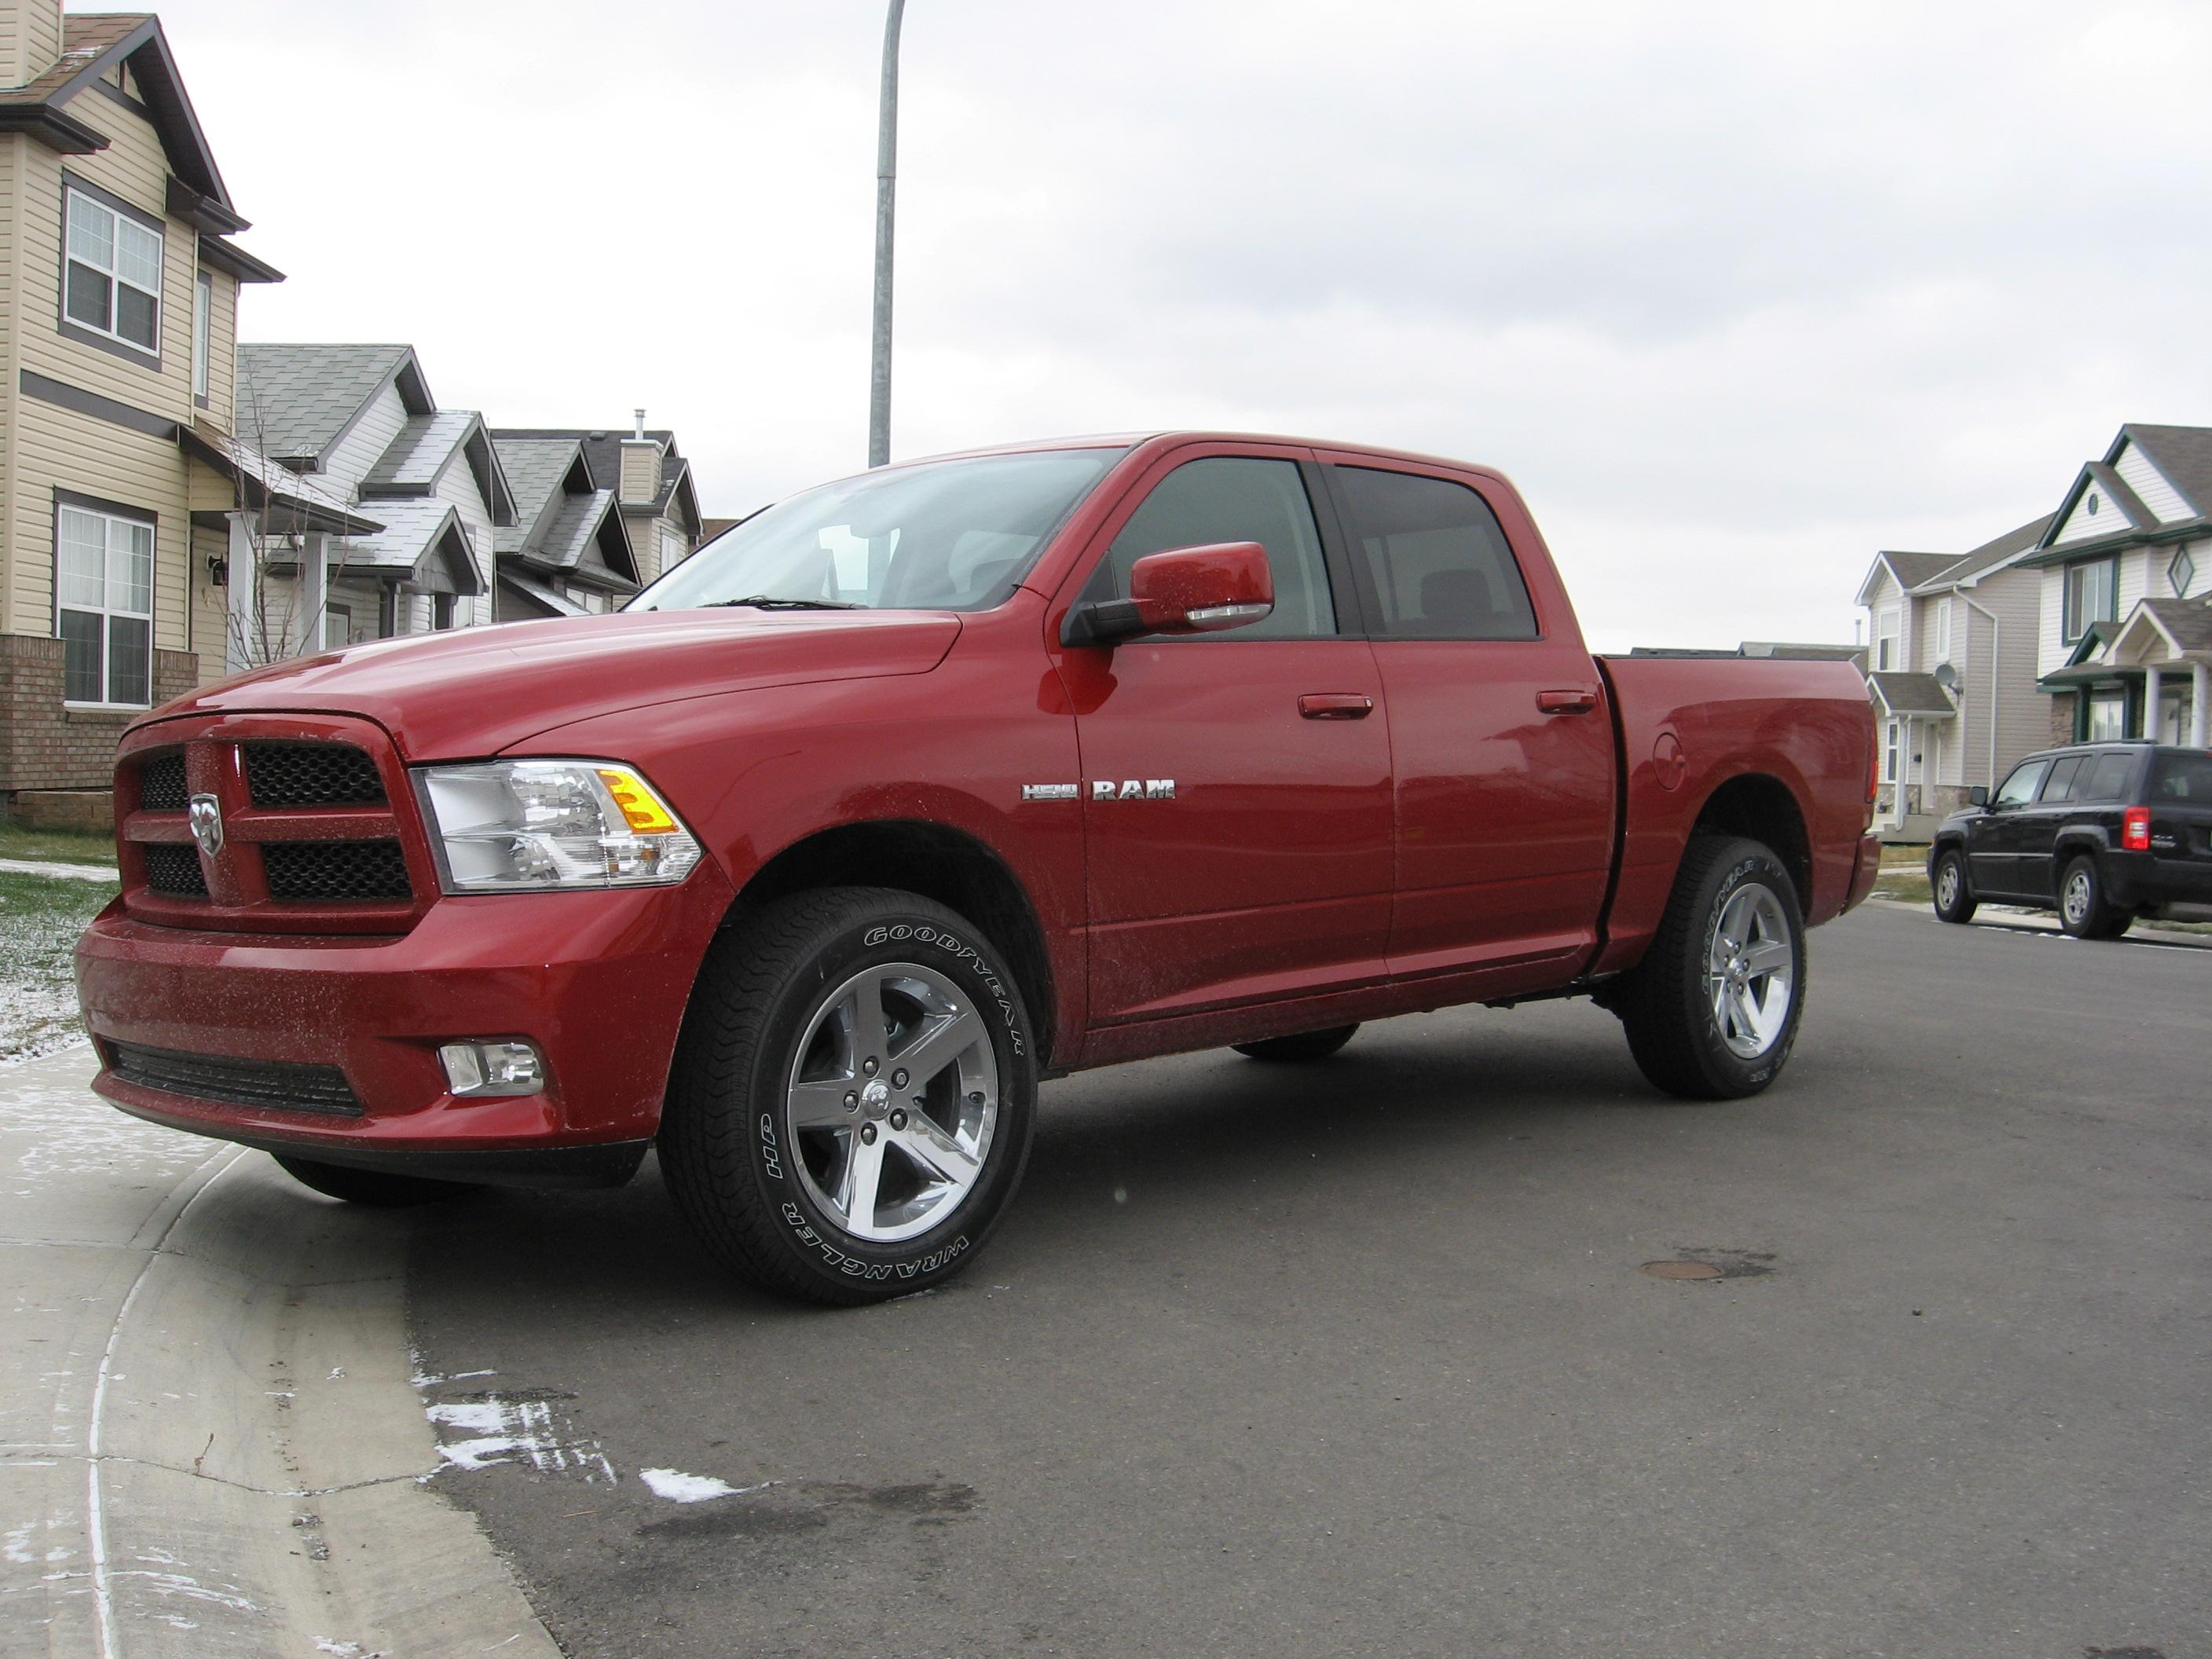 xtravisimox 2009 dodge ram 1500 quad cab specs photos. Black Bedroom Furniture Sets. Home Design Ideas